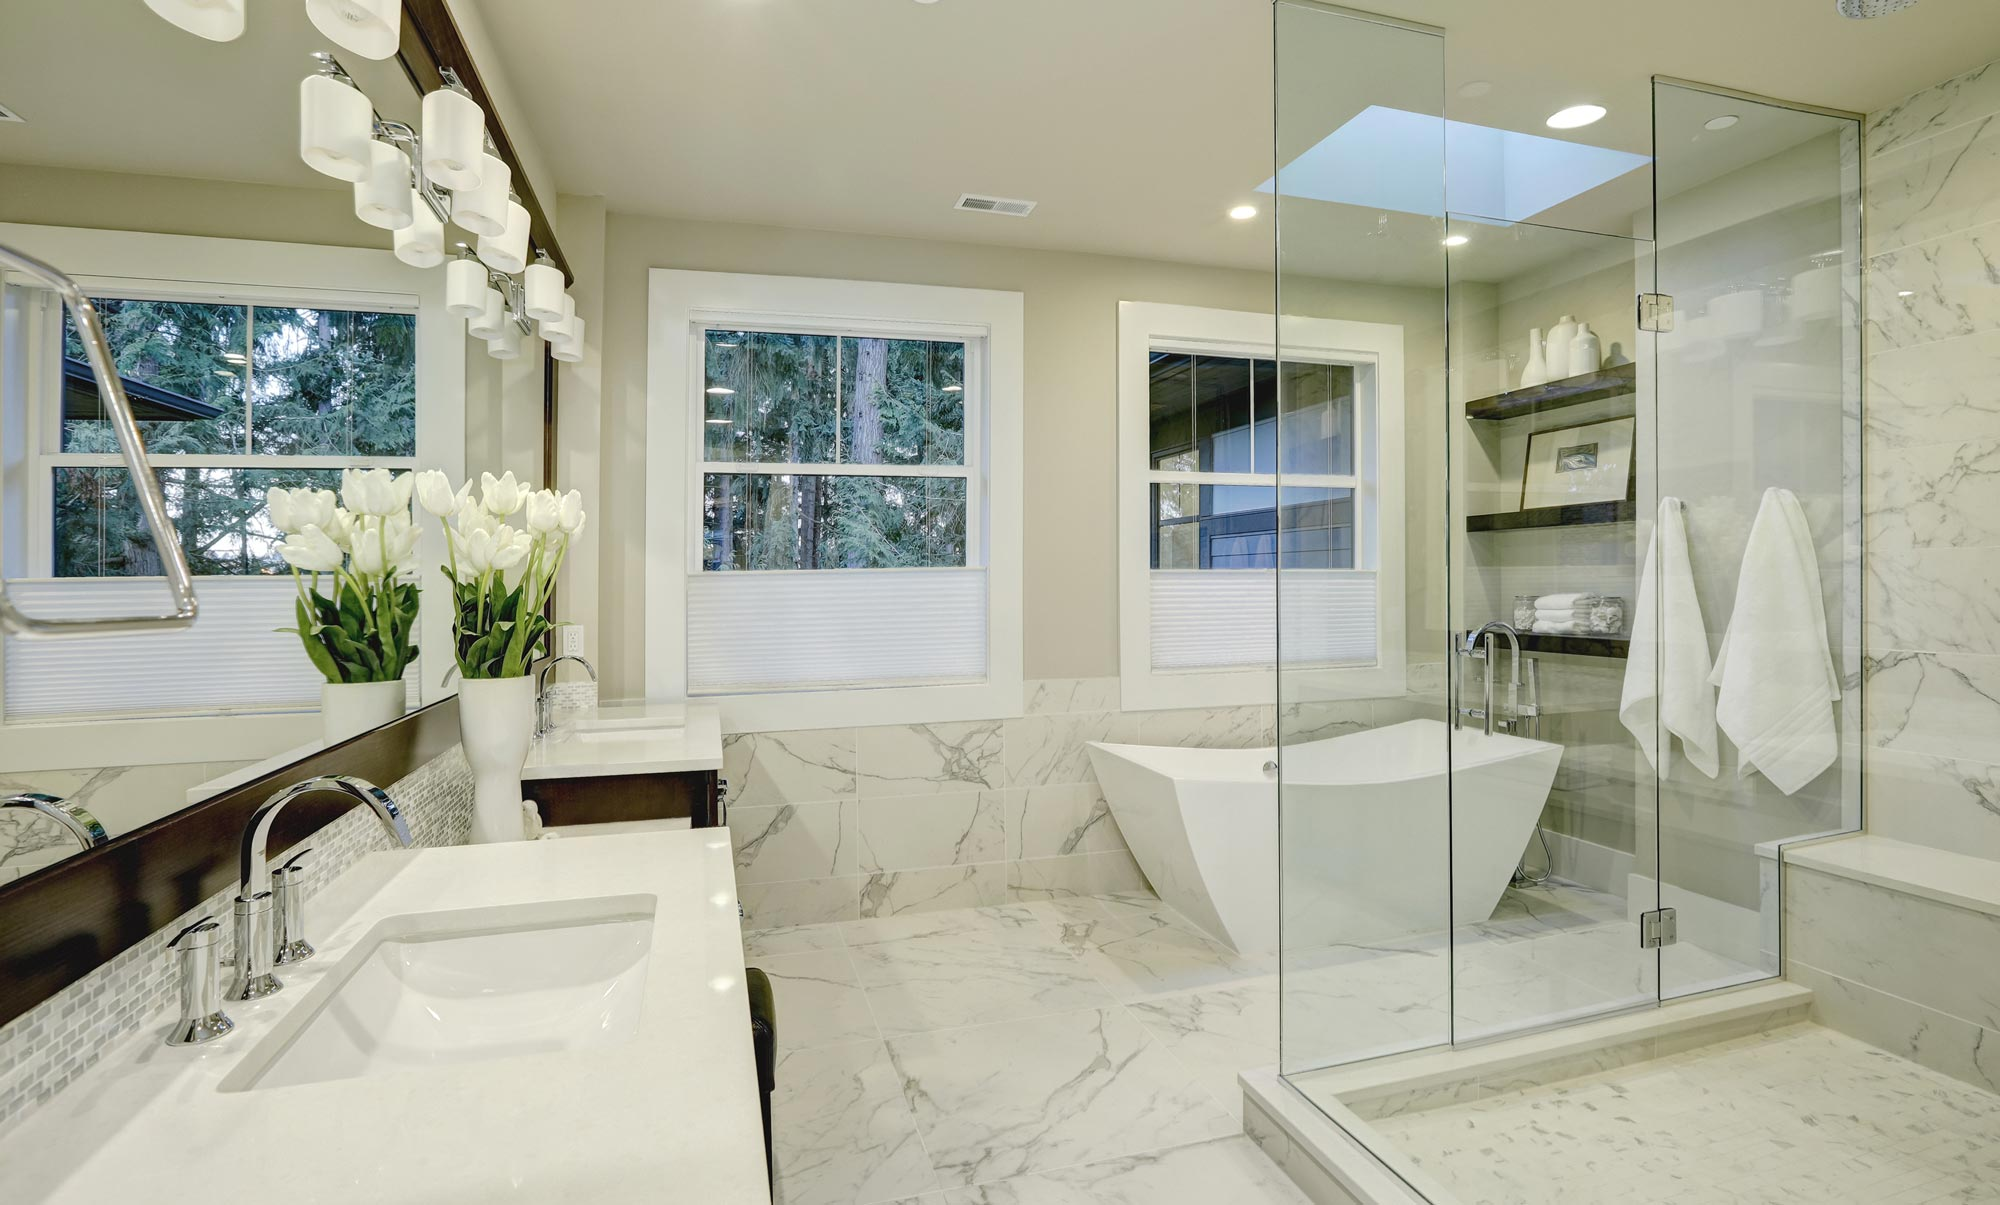 What You Should Know Before Beginning Your Bathroom Renovation